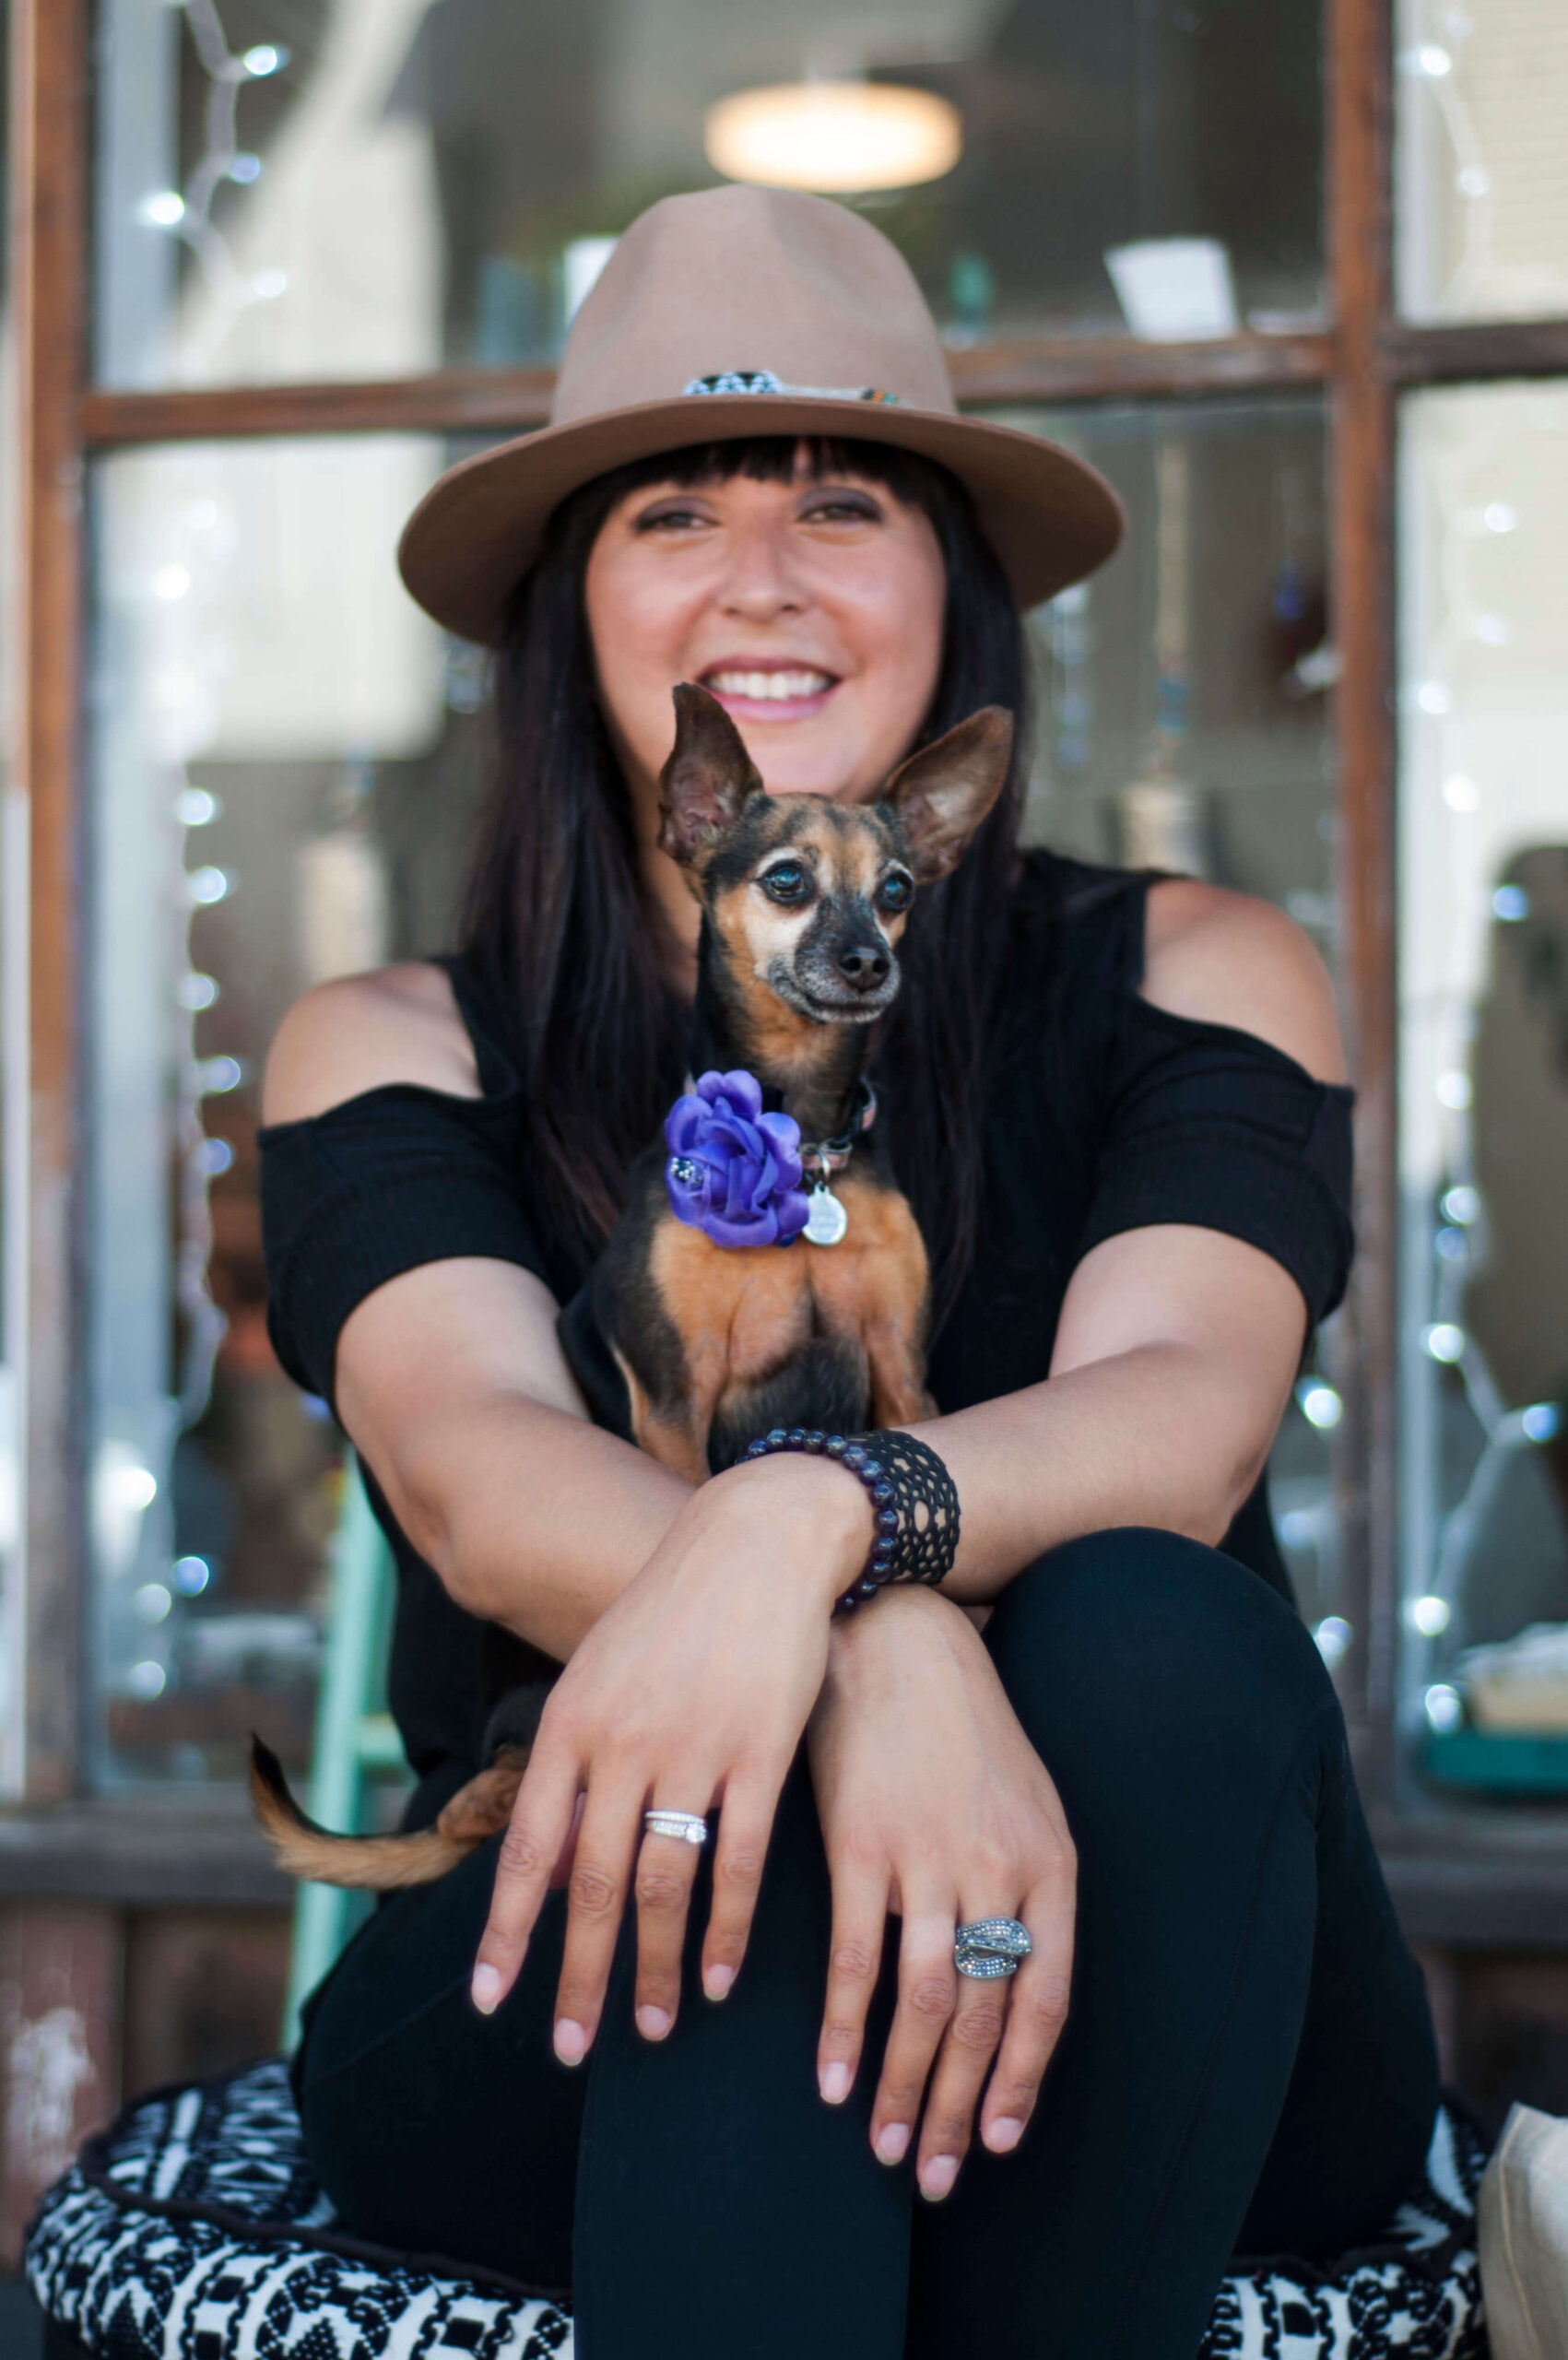 Denise Clifton dressed in black, sitting cross legged with a chihuahua on her lap